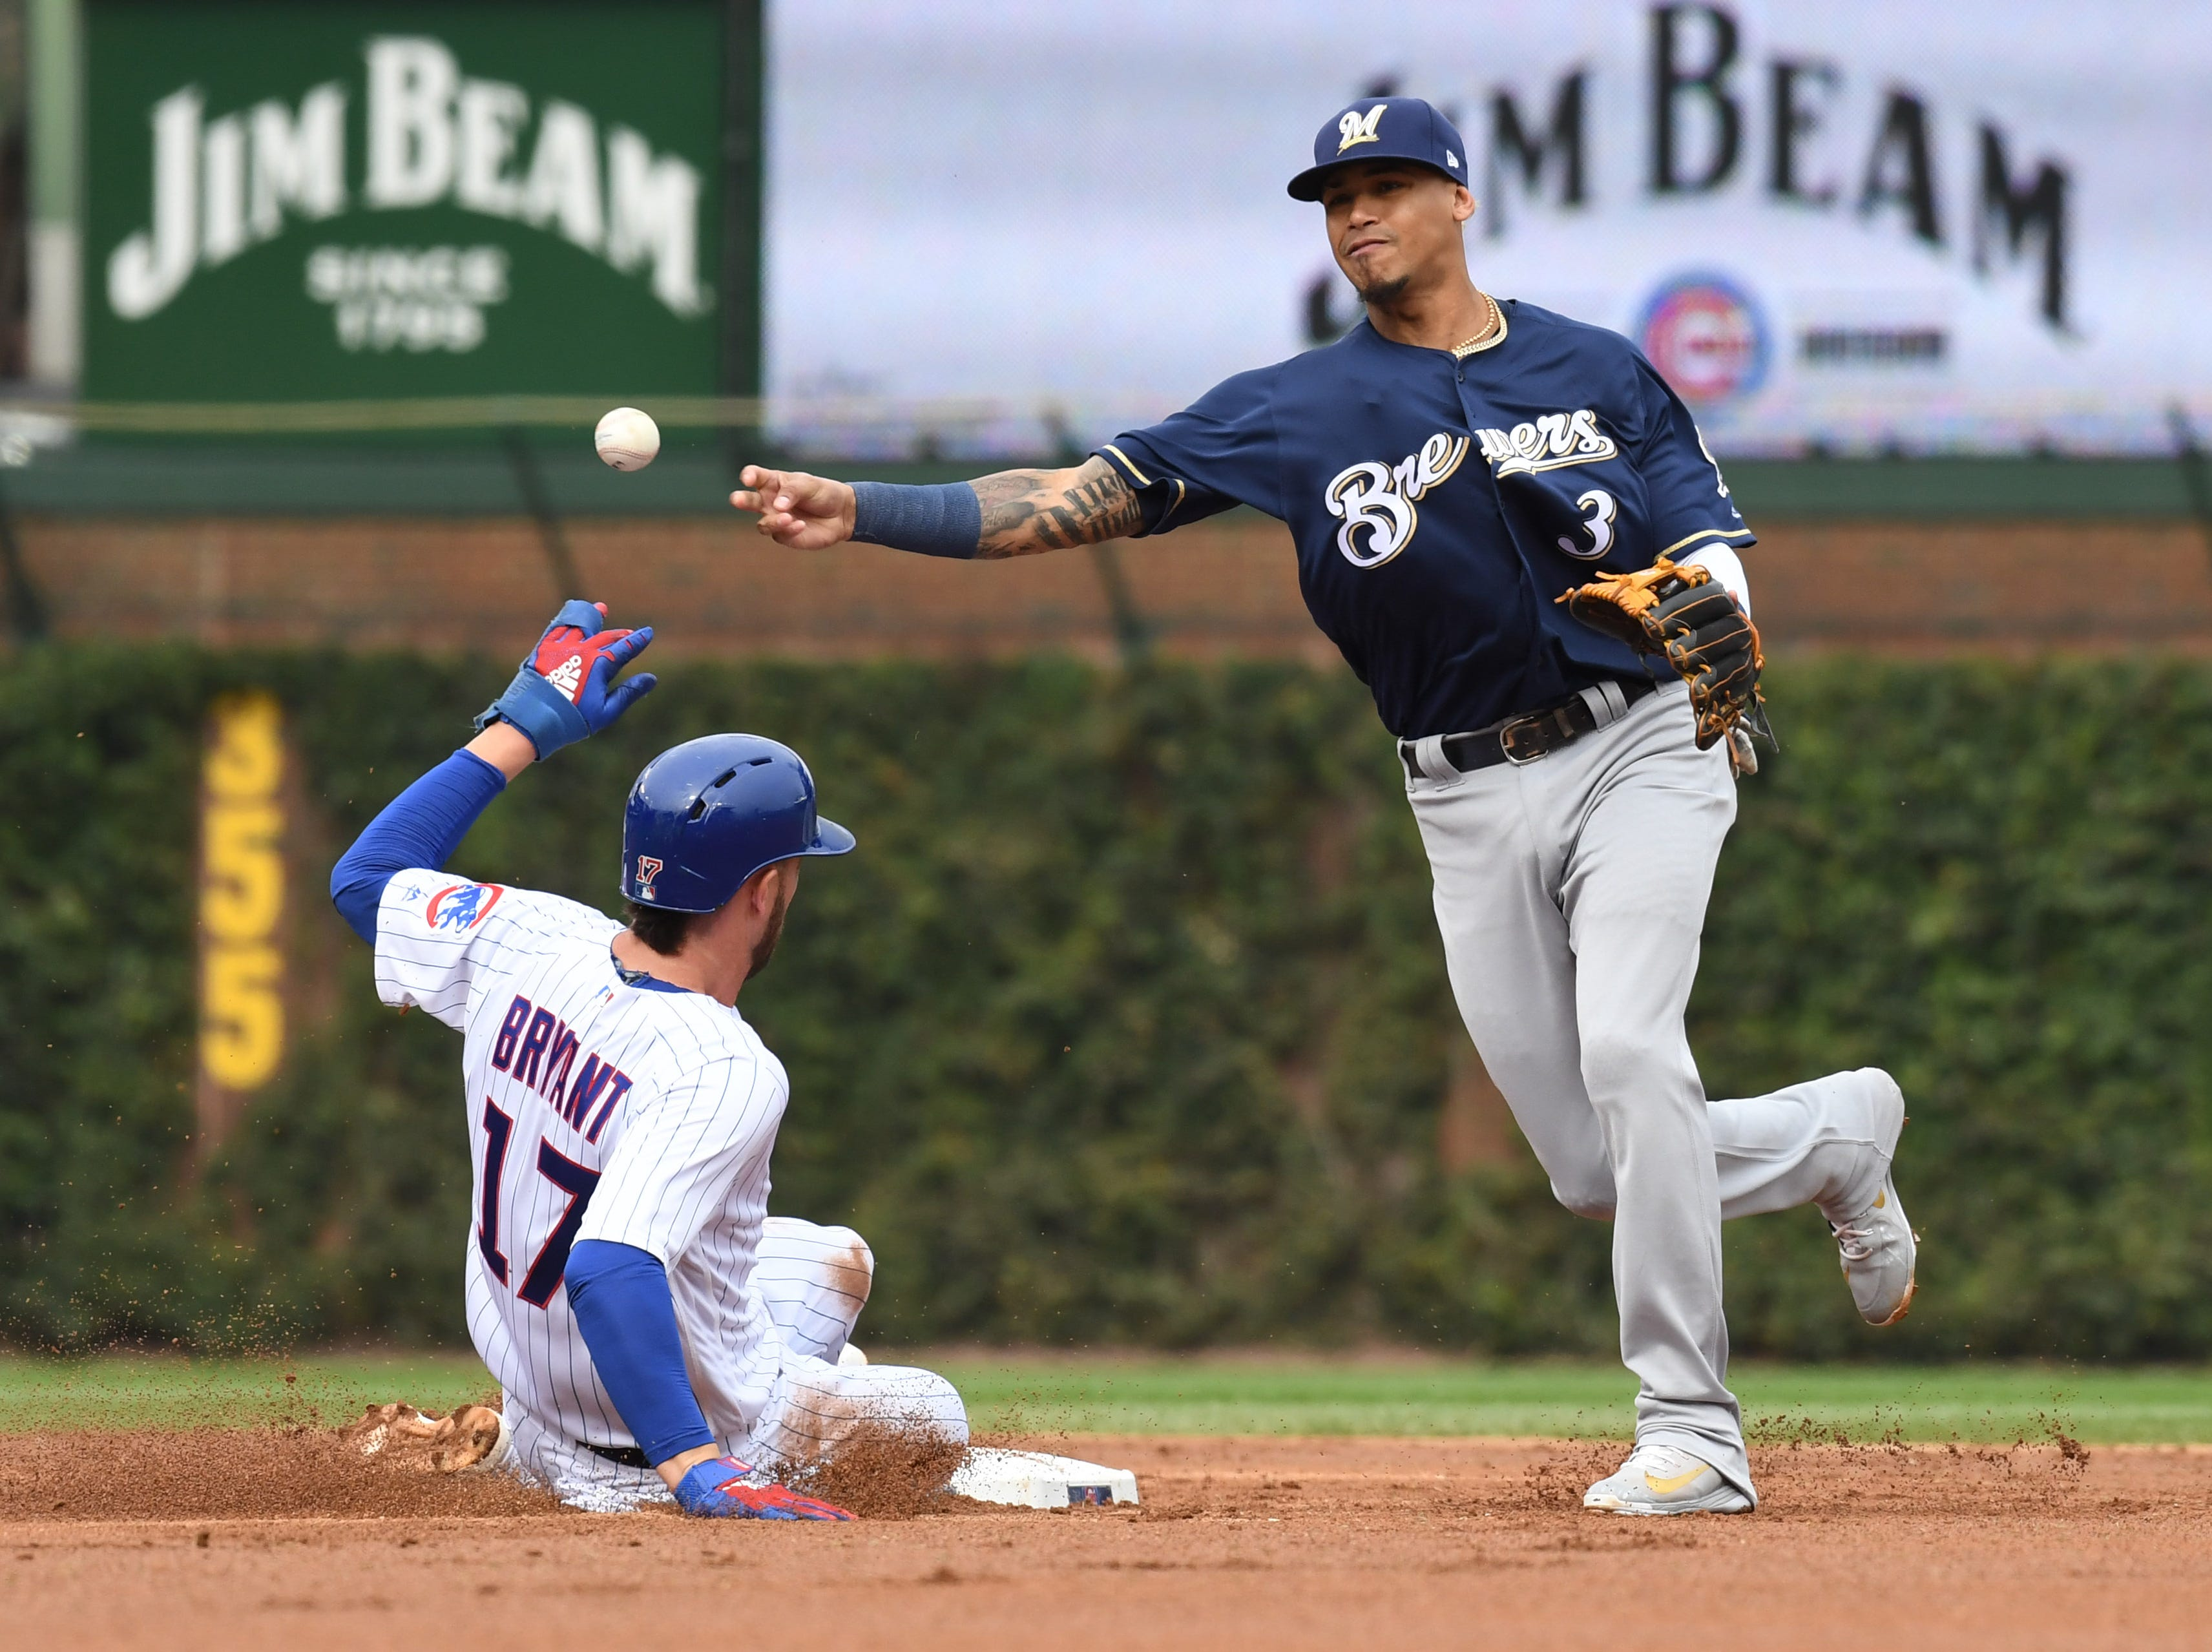 Brewers shortstop Orlando Arcia turns a double play in the second inning as Kris Bryant slides in.